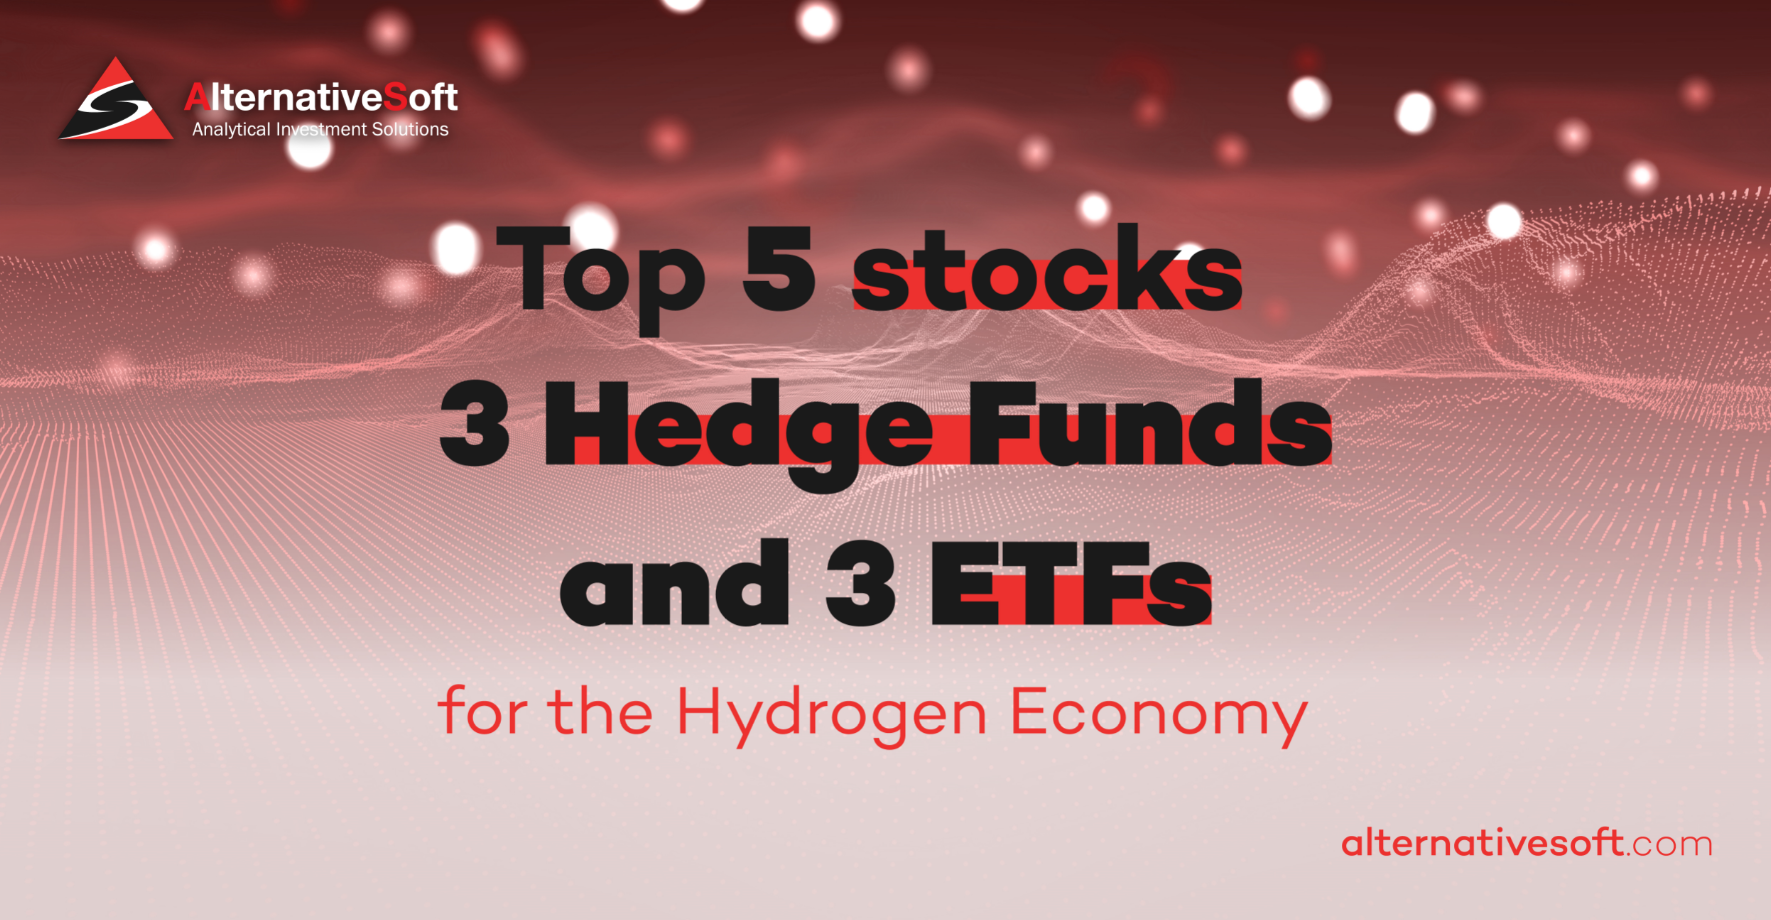 Alternativesoft - Top 5 stocks, 3 Hedge Funds and 3 ETFs for the Hydrogen Economy